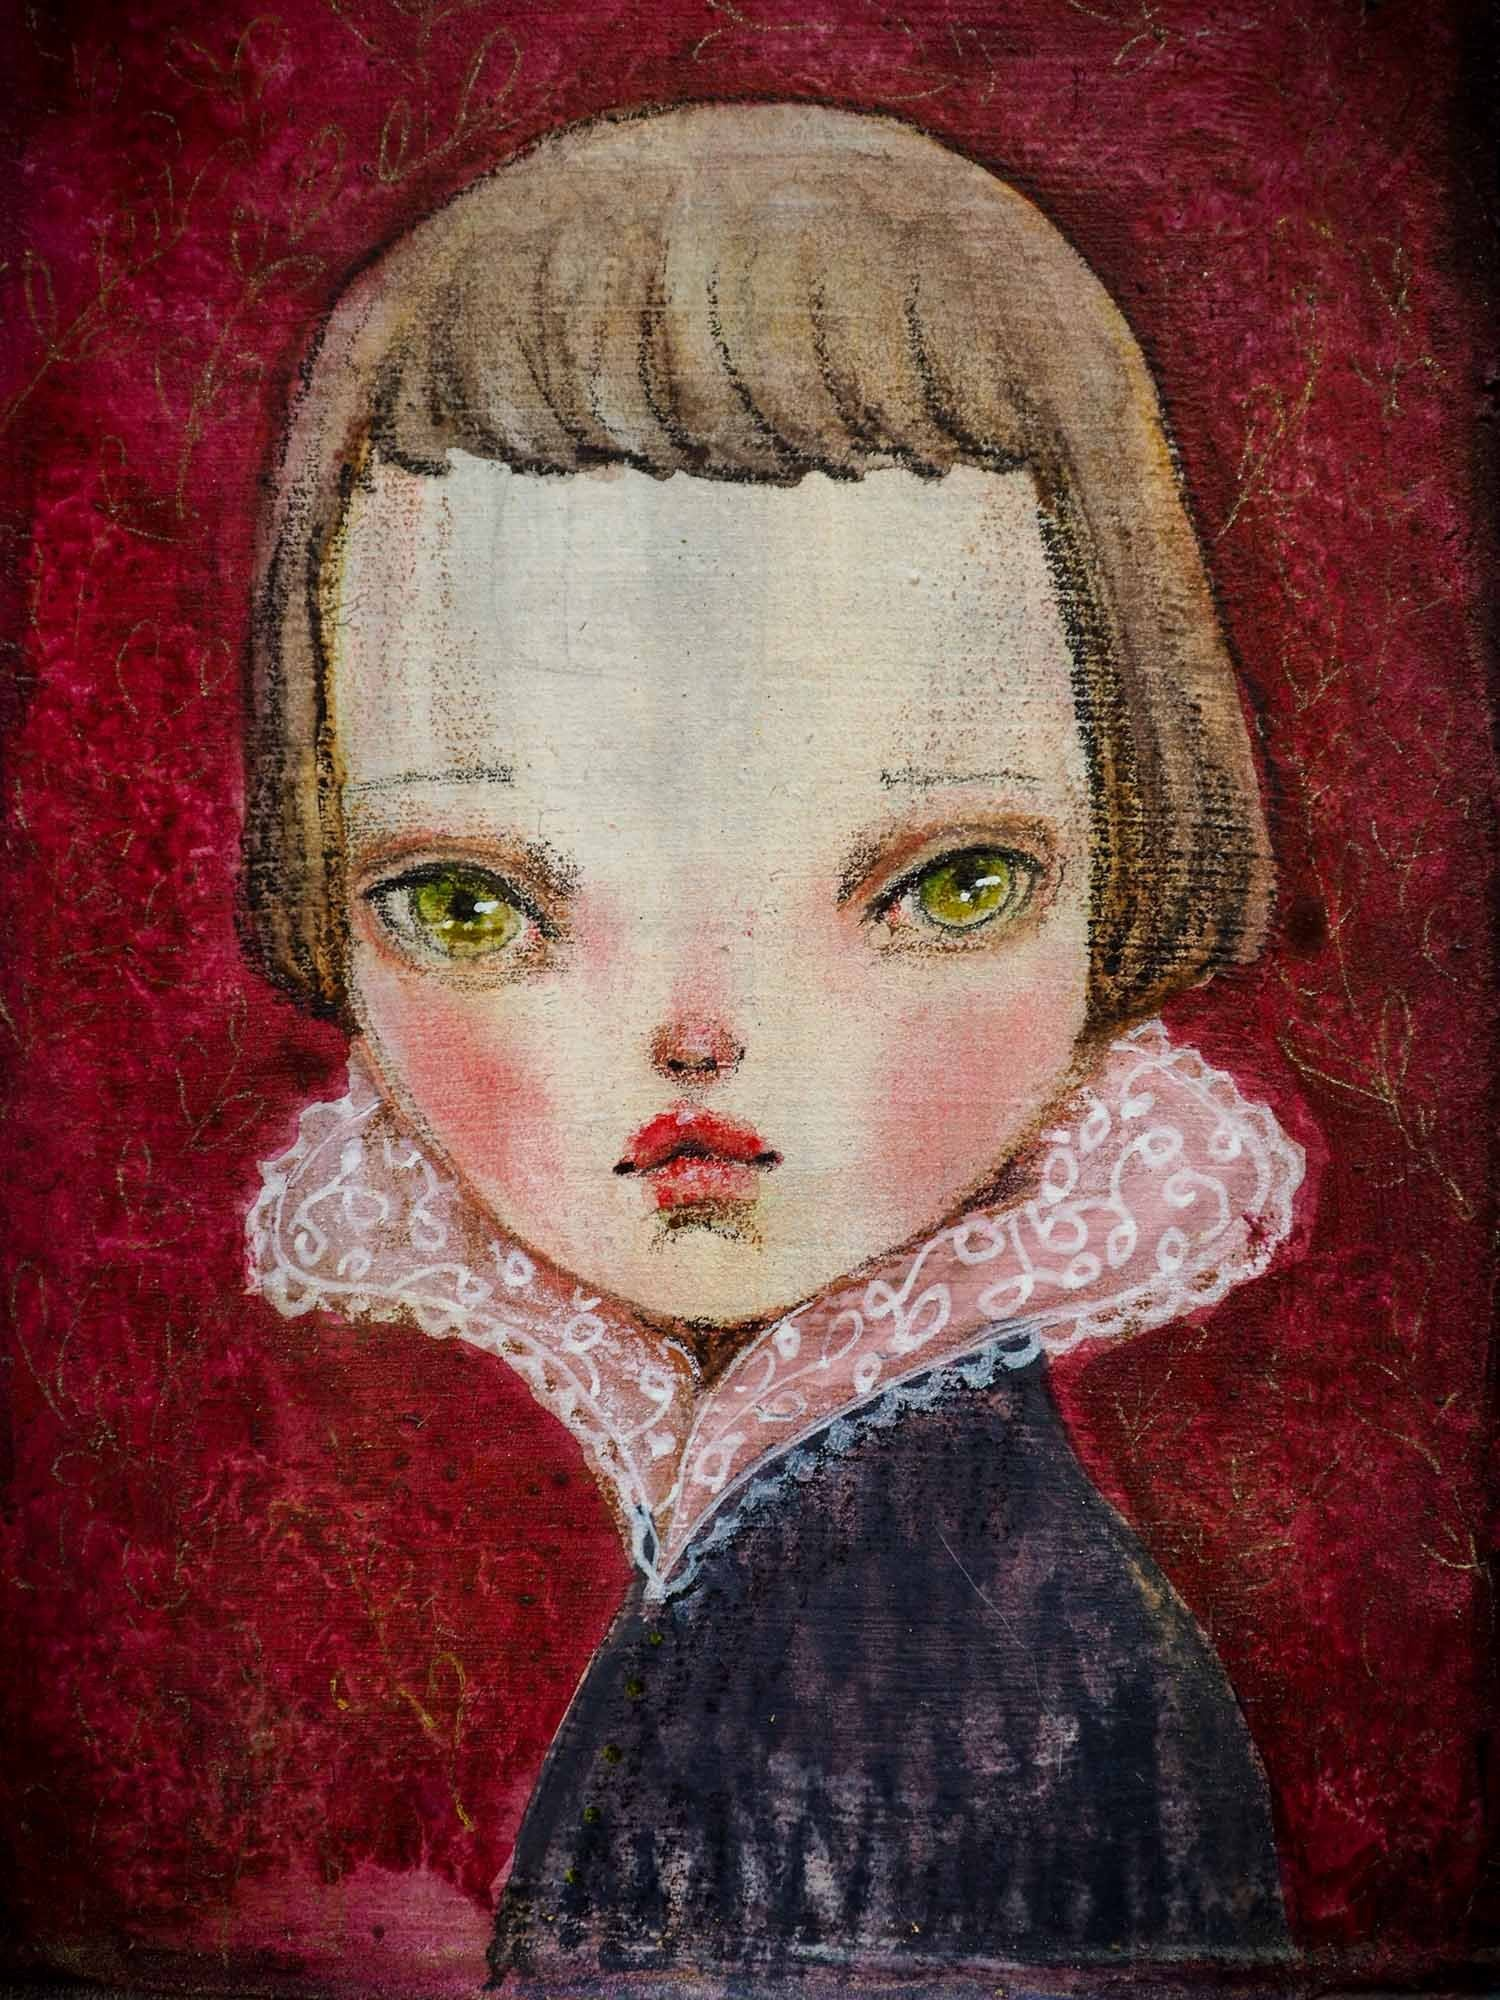 An original watercolor painting by Danita Art. Royal woman portrait with green eyes in watercolor over metal by Mexican mixed media painter and doll maker Danita.